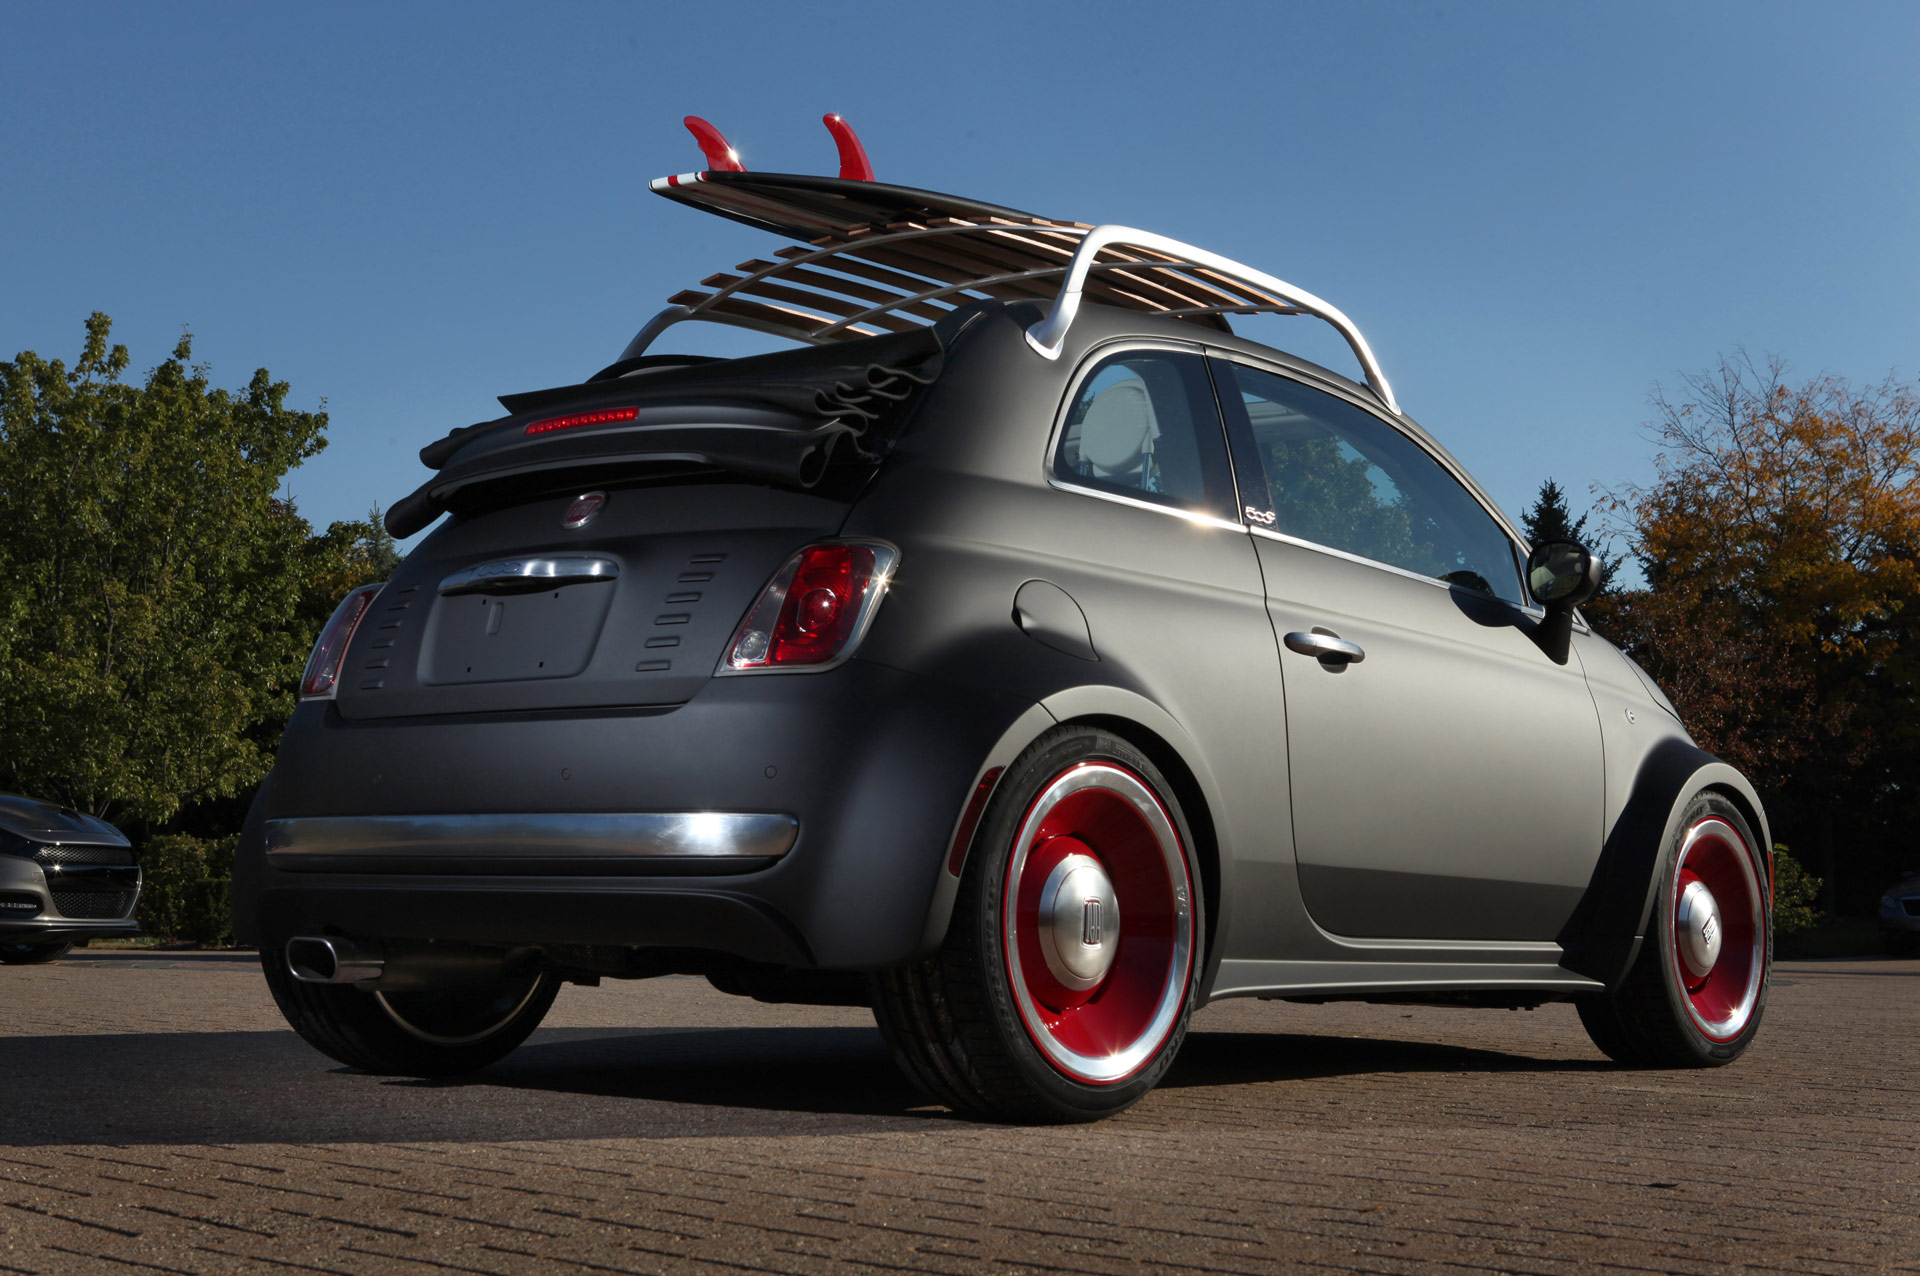 Retro Beach Wallpaper 500 489: 2012 Fiat 500 Beach Cruiser News And Information